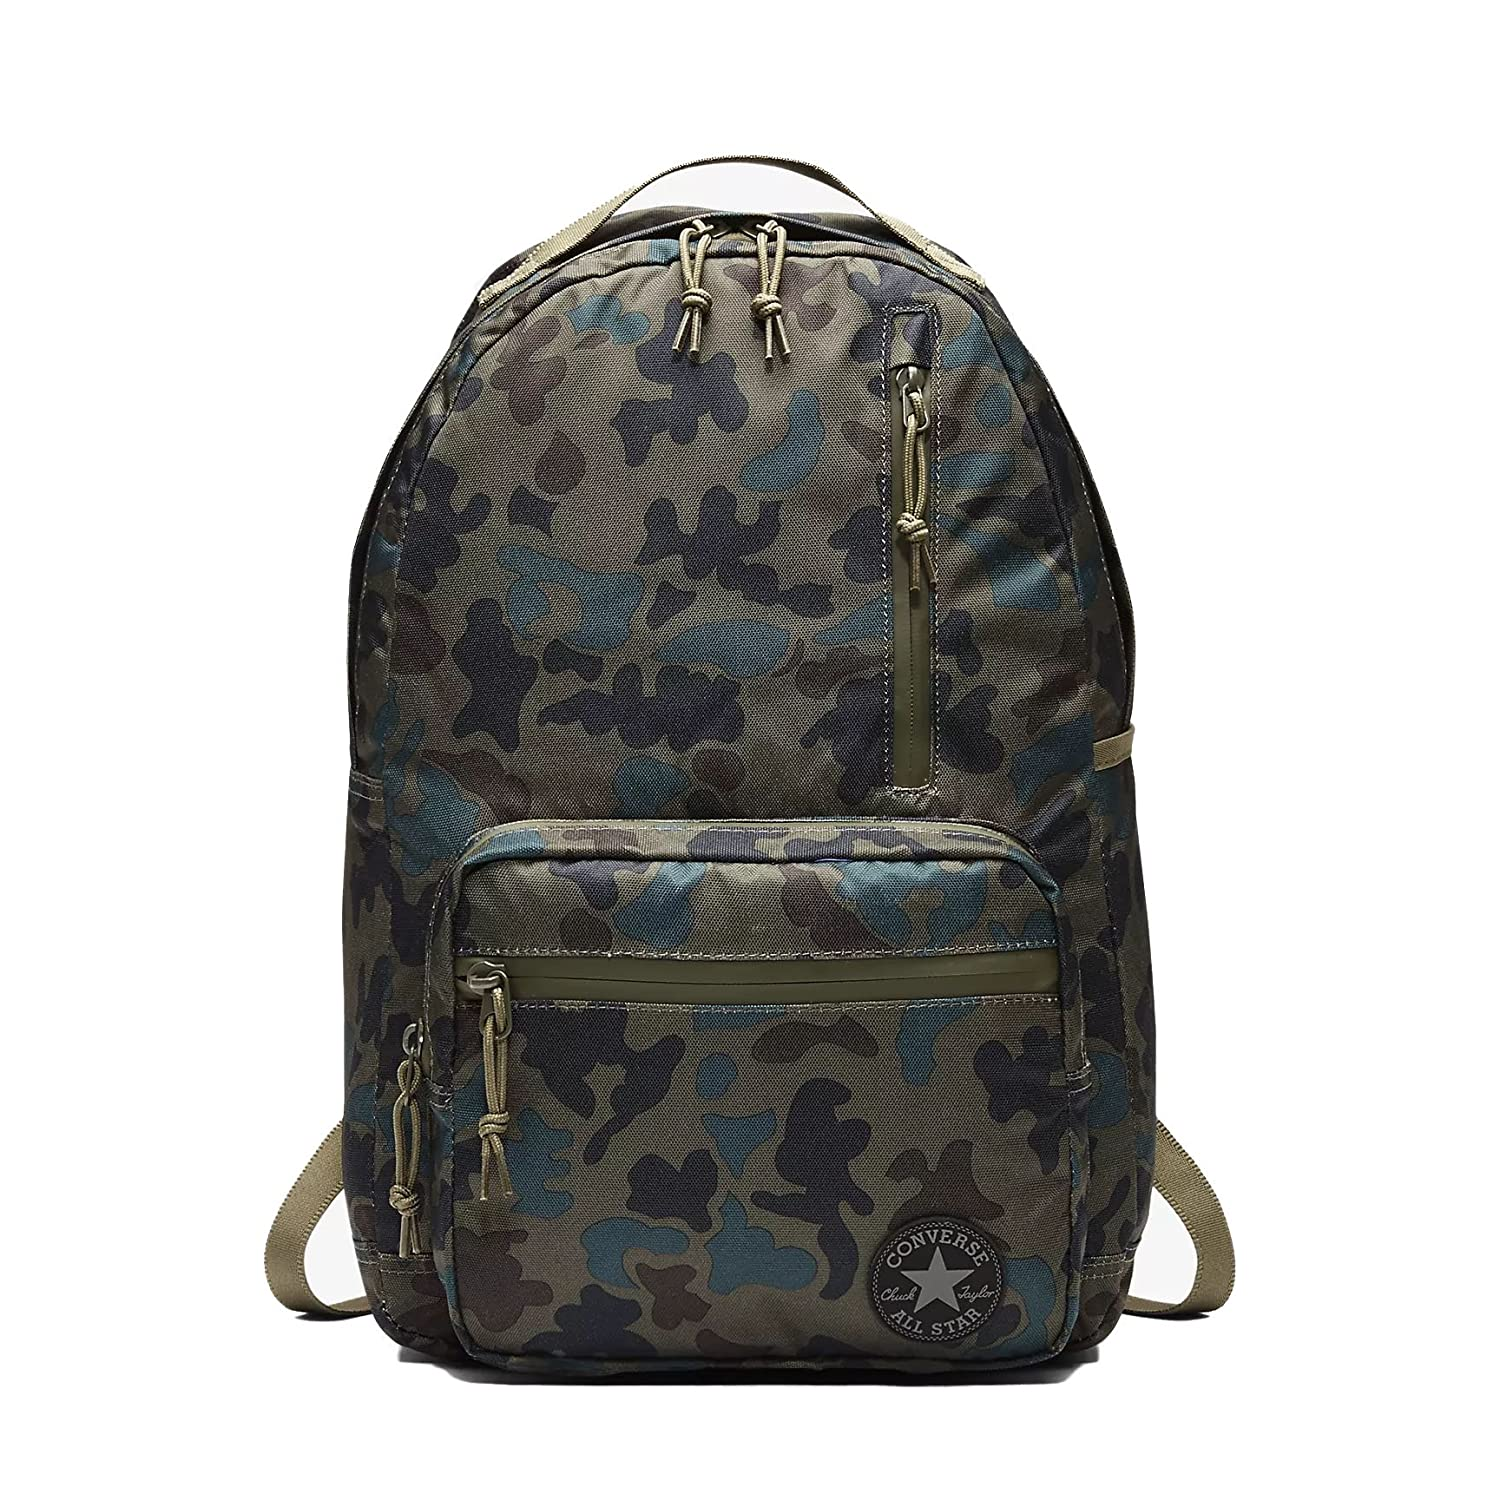 c2532f6b2e converse go backpack navy view full size image huge discount d43b5 ...